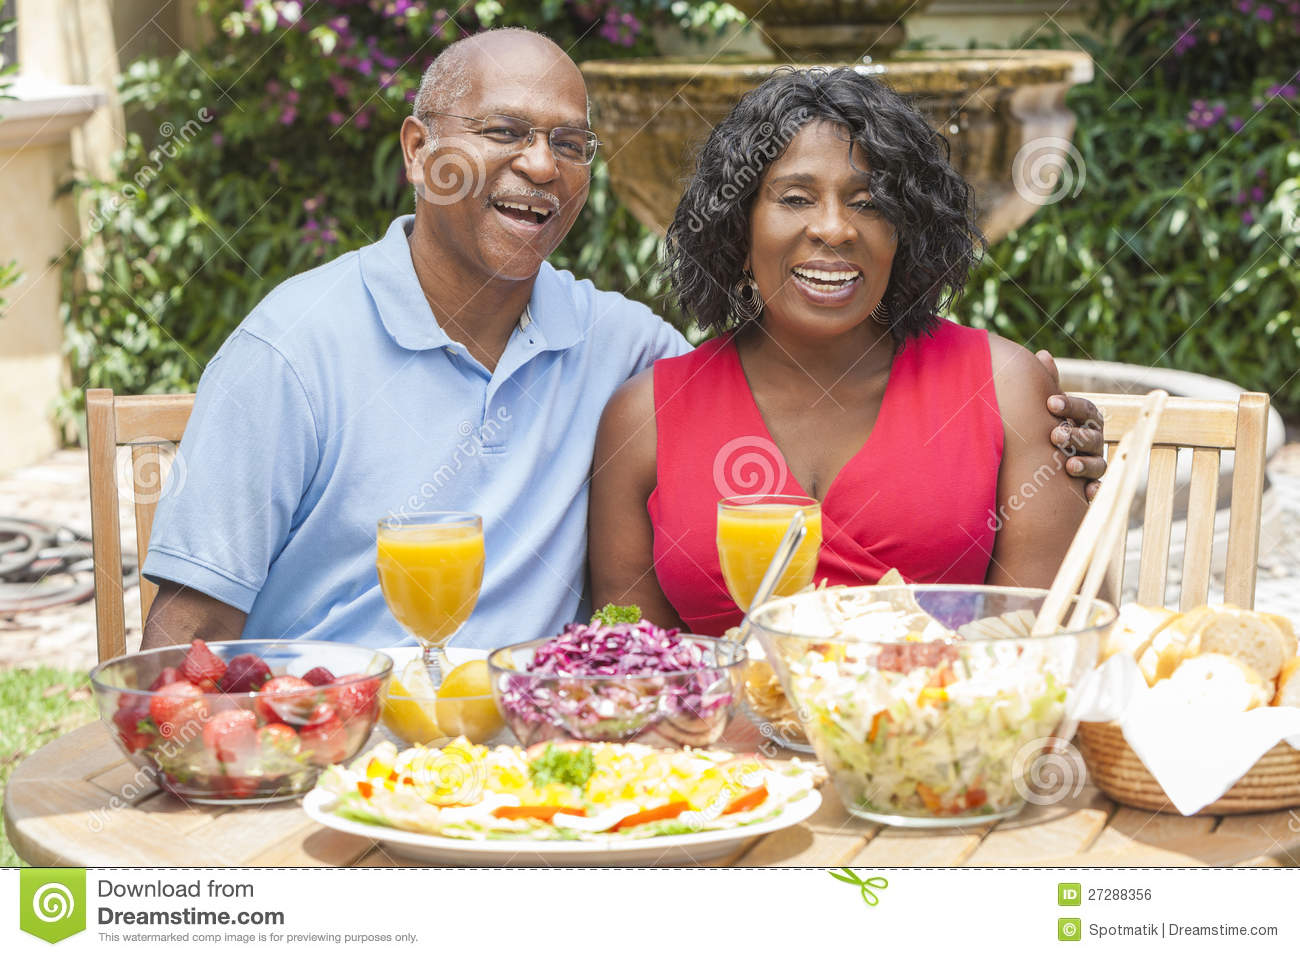 ... African American couple eating healthy food at a picnic table outside